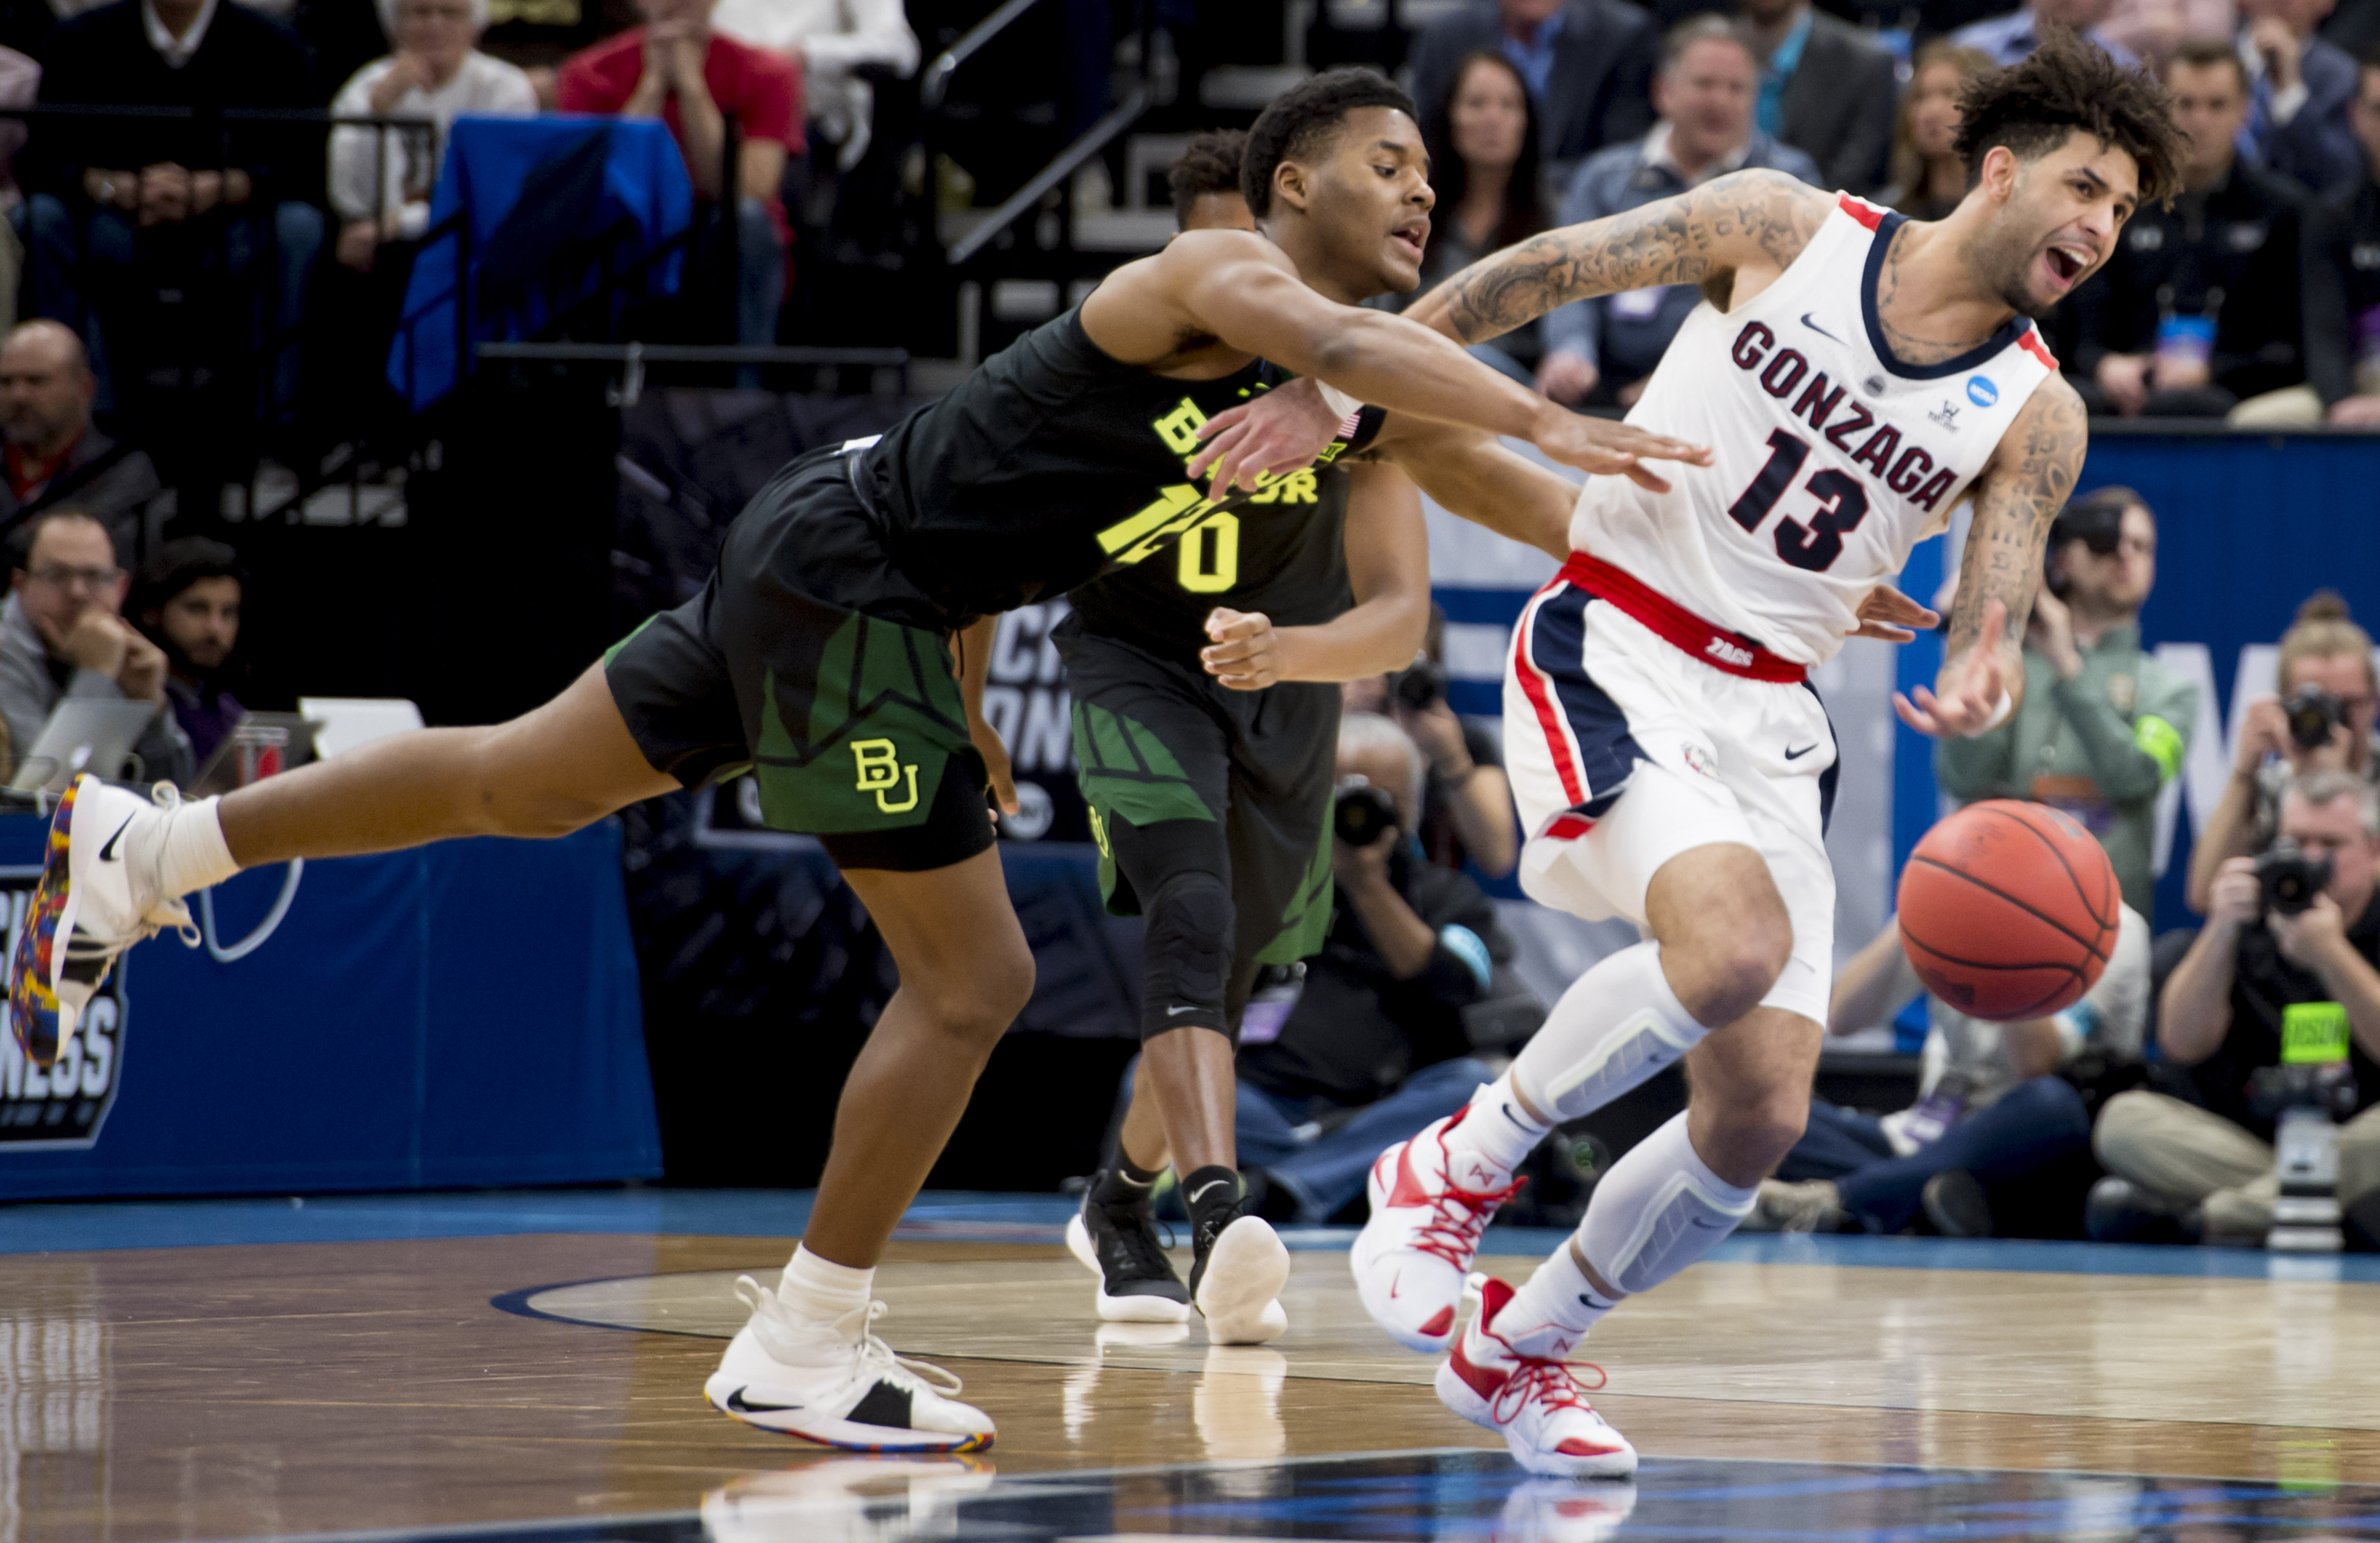 Gonzaga advances to the Sweet 16 with an 83-71 win over Baylor